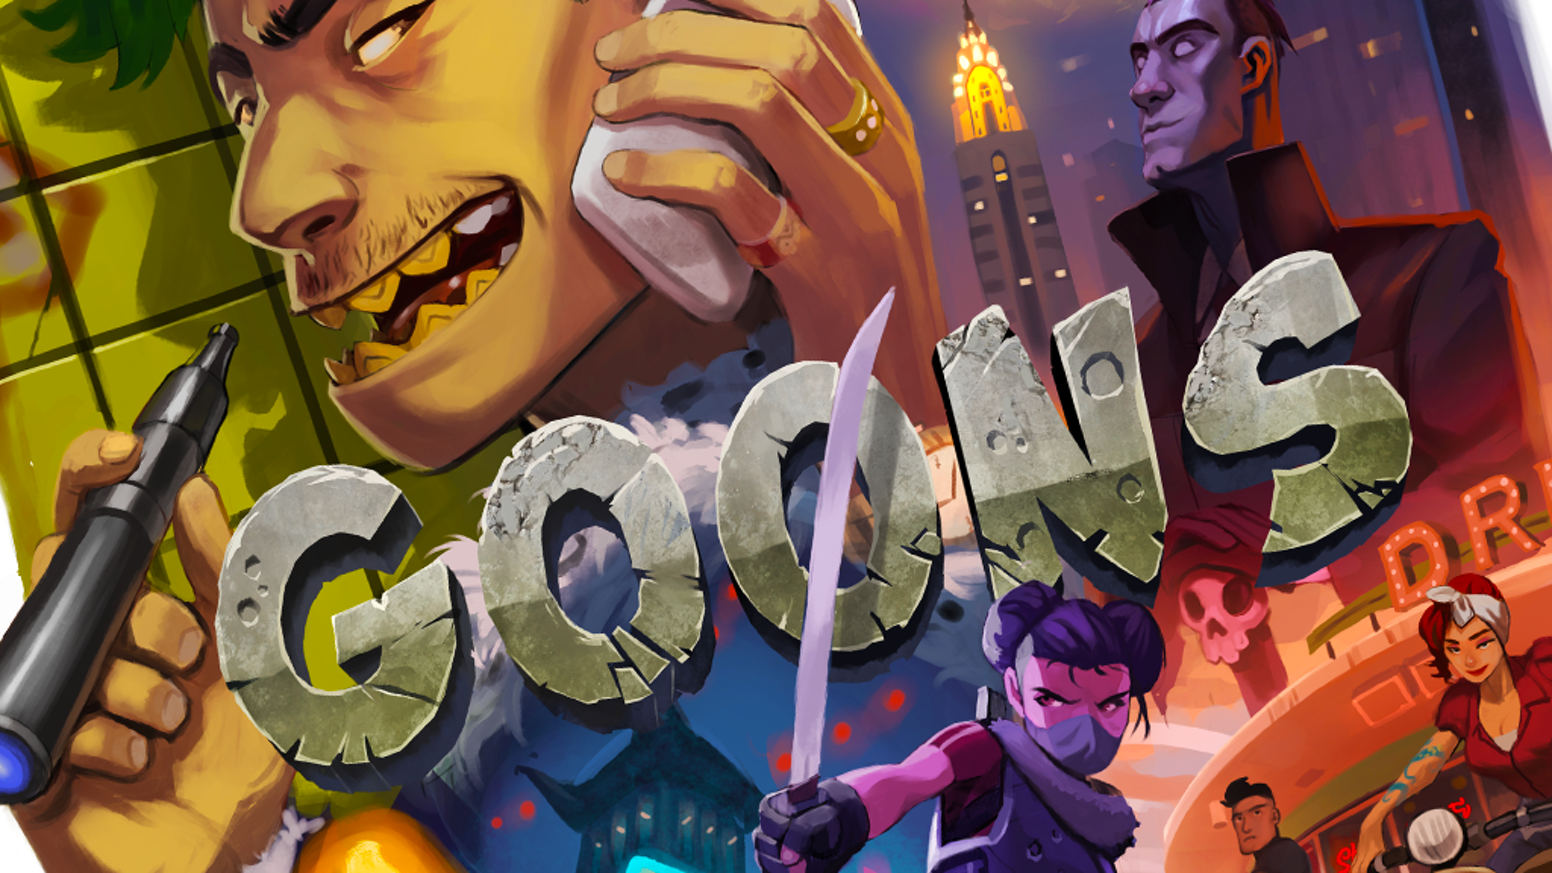 A strategy board game about being the lowest crook on the criminal food chain, the goon!